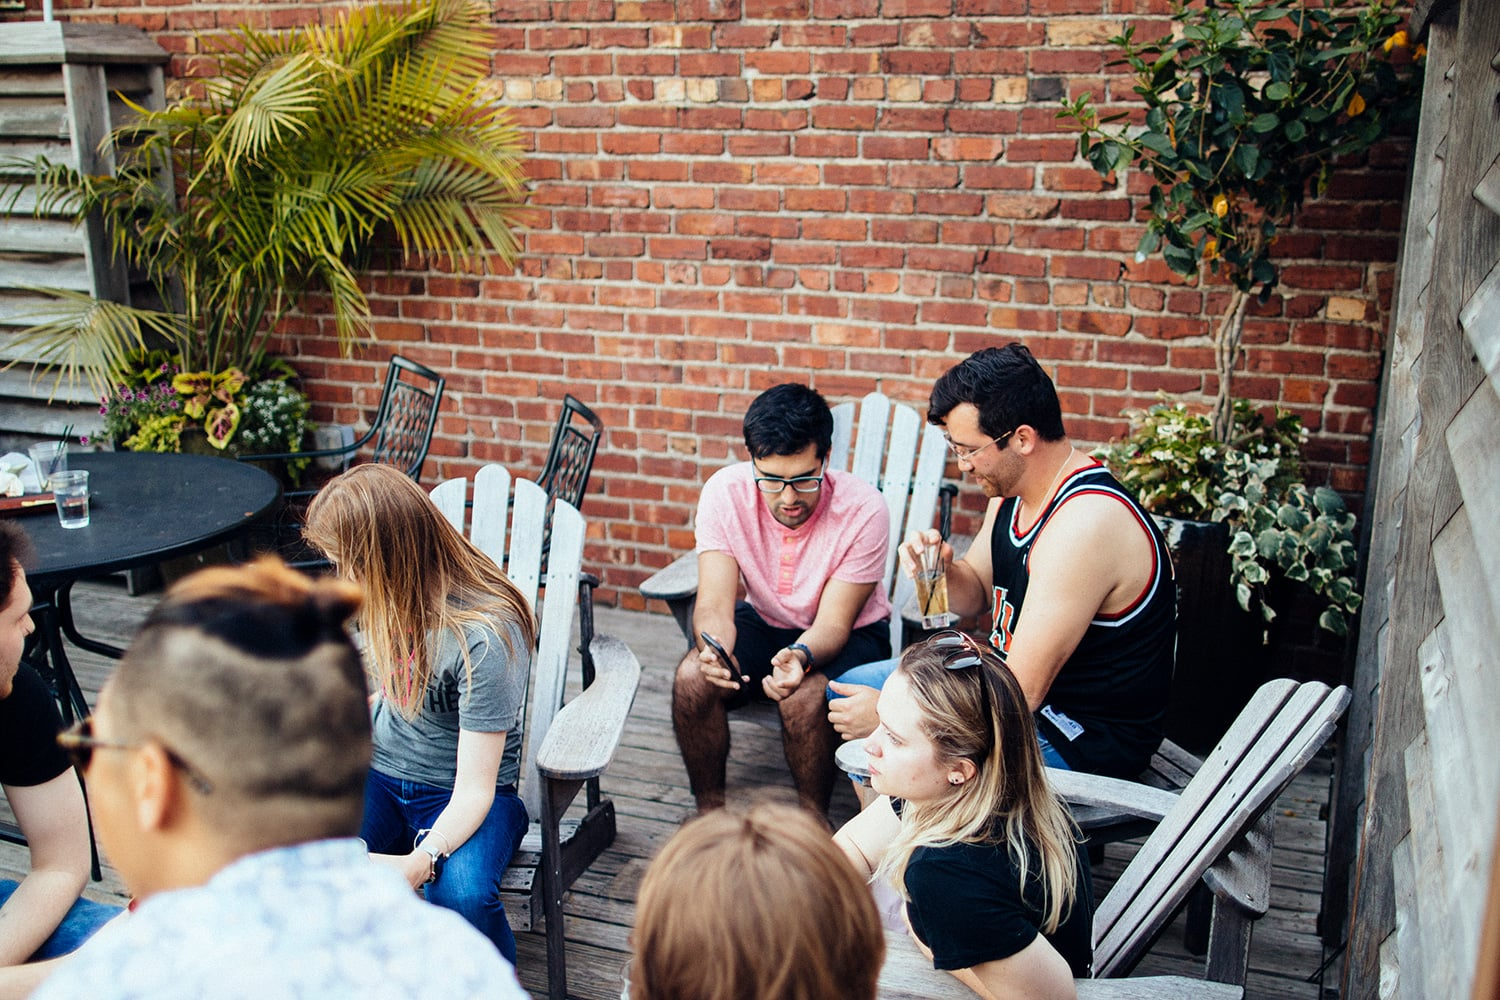 people-in-corner-on-patio